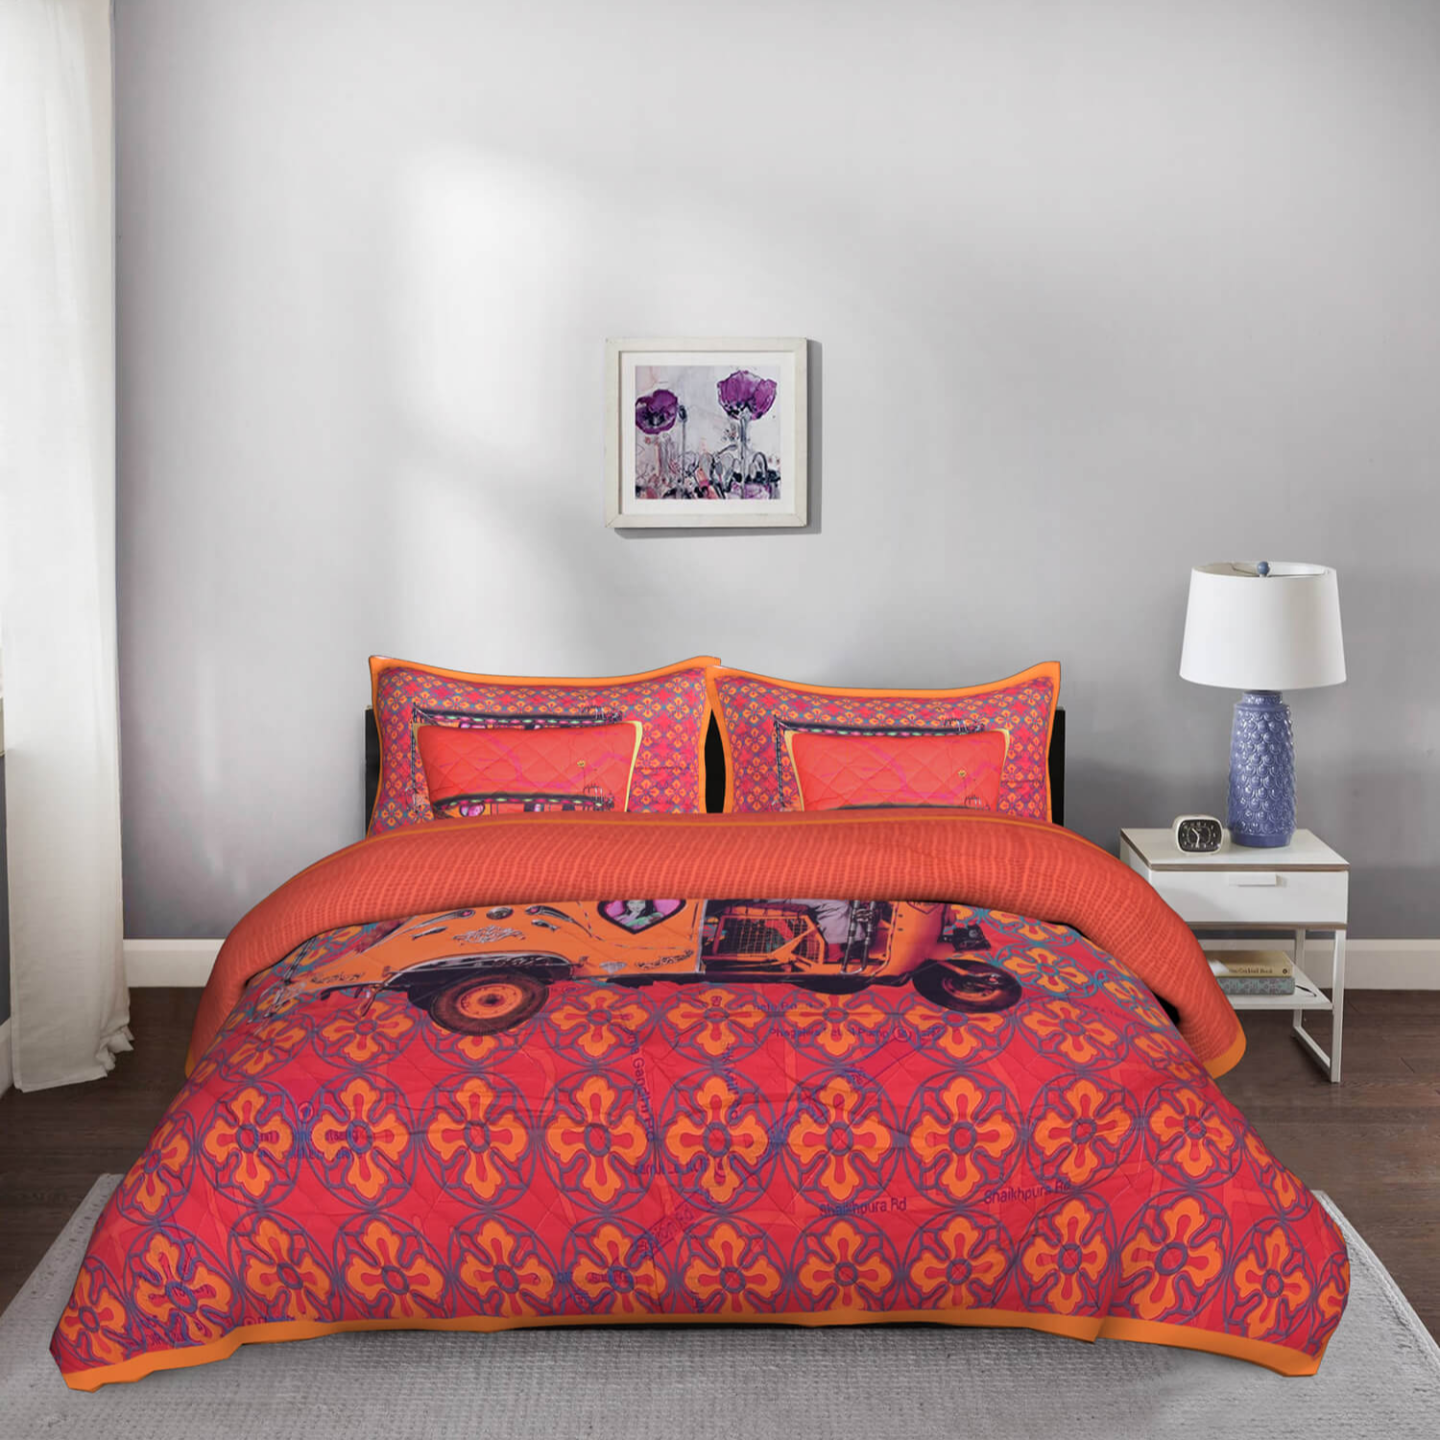 Orange Auto Rickshaw King Size Cotton Quilted Bedspread